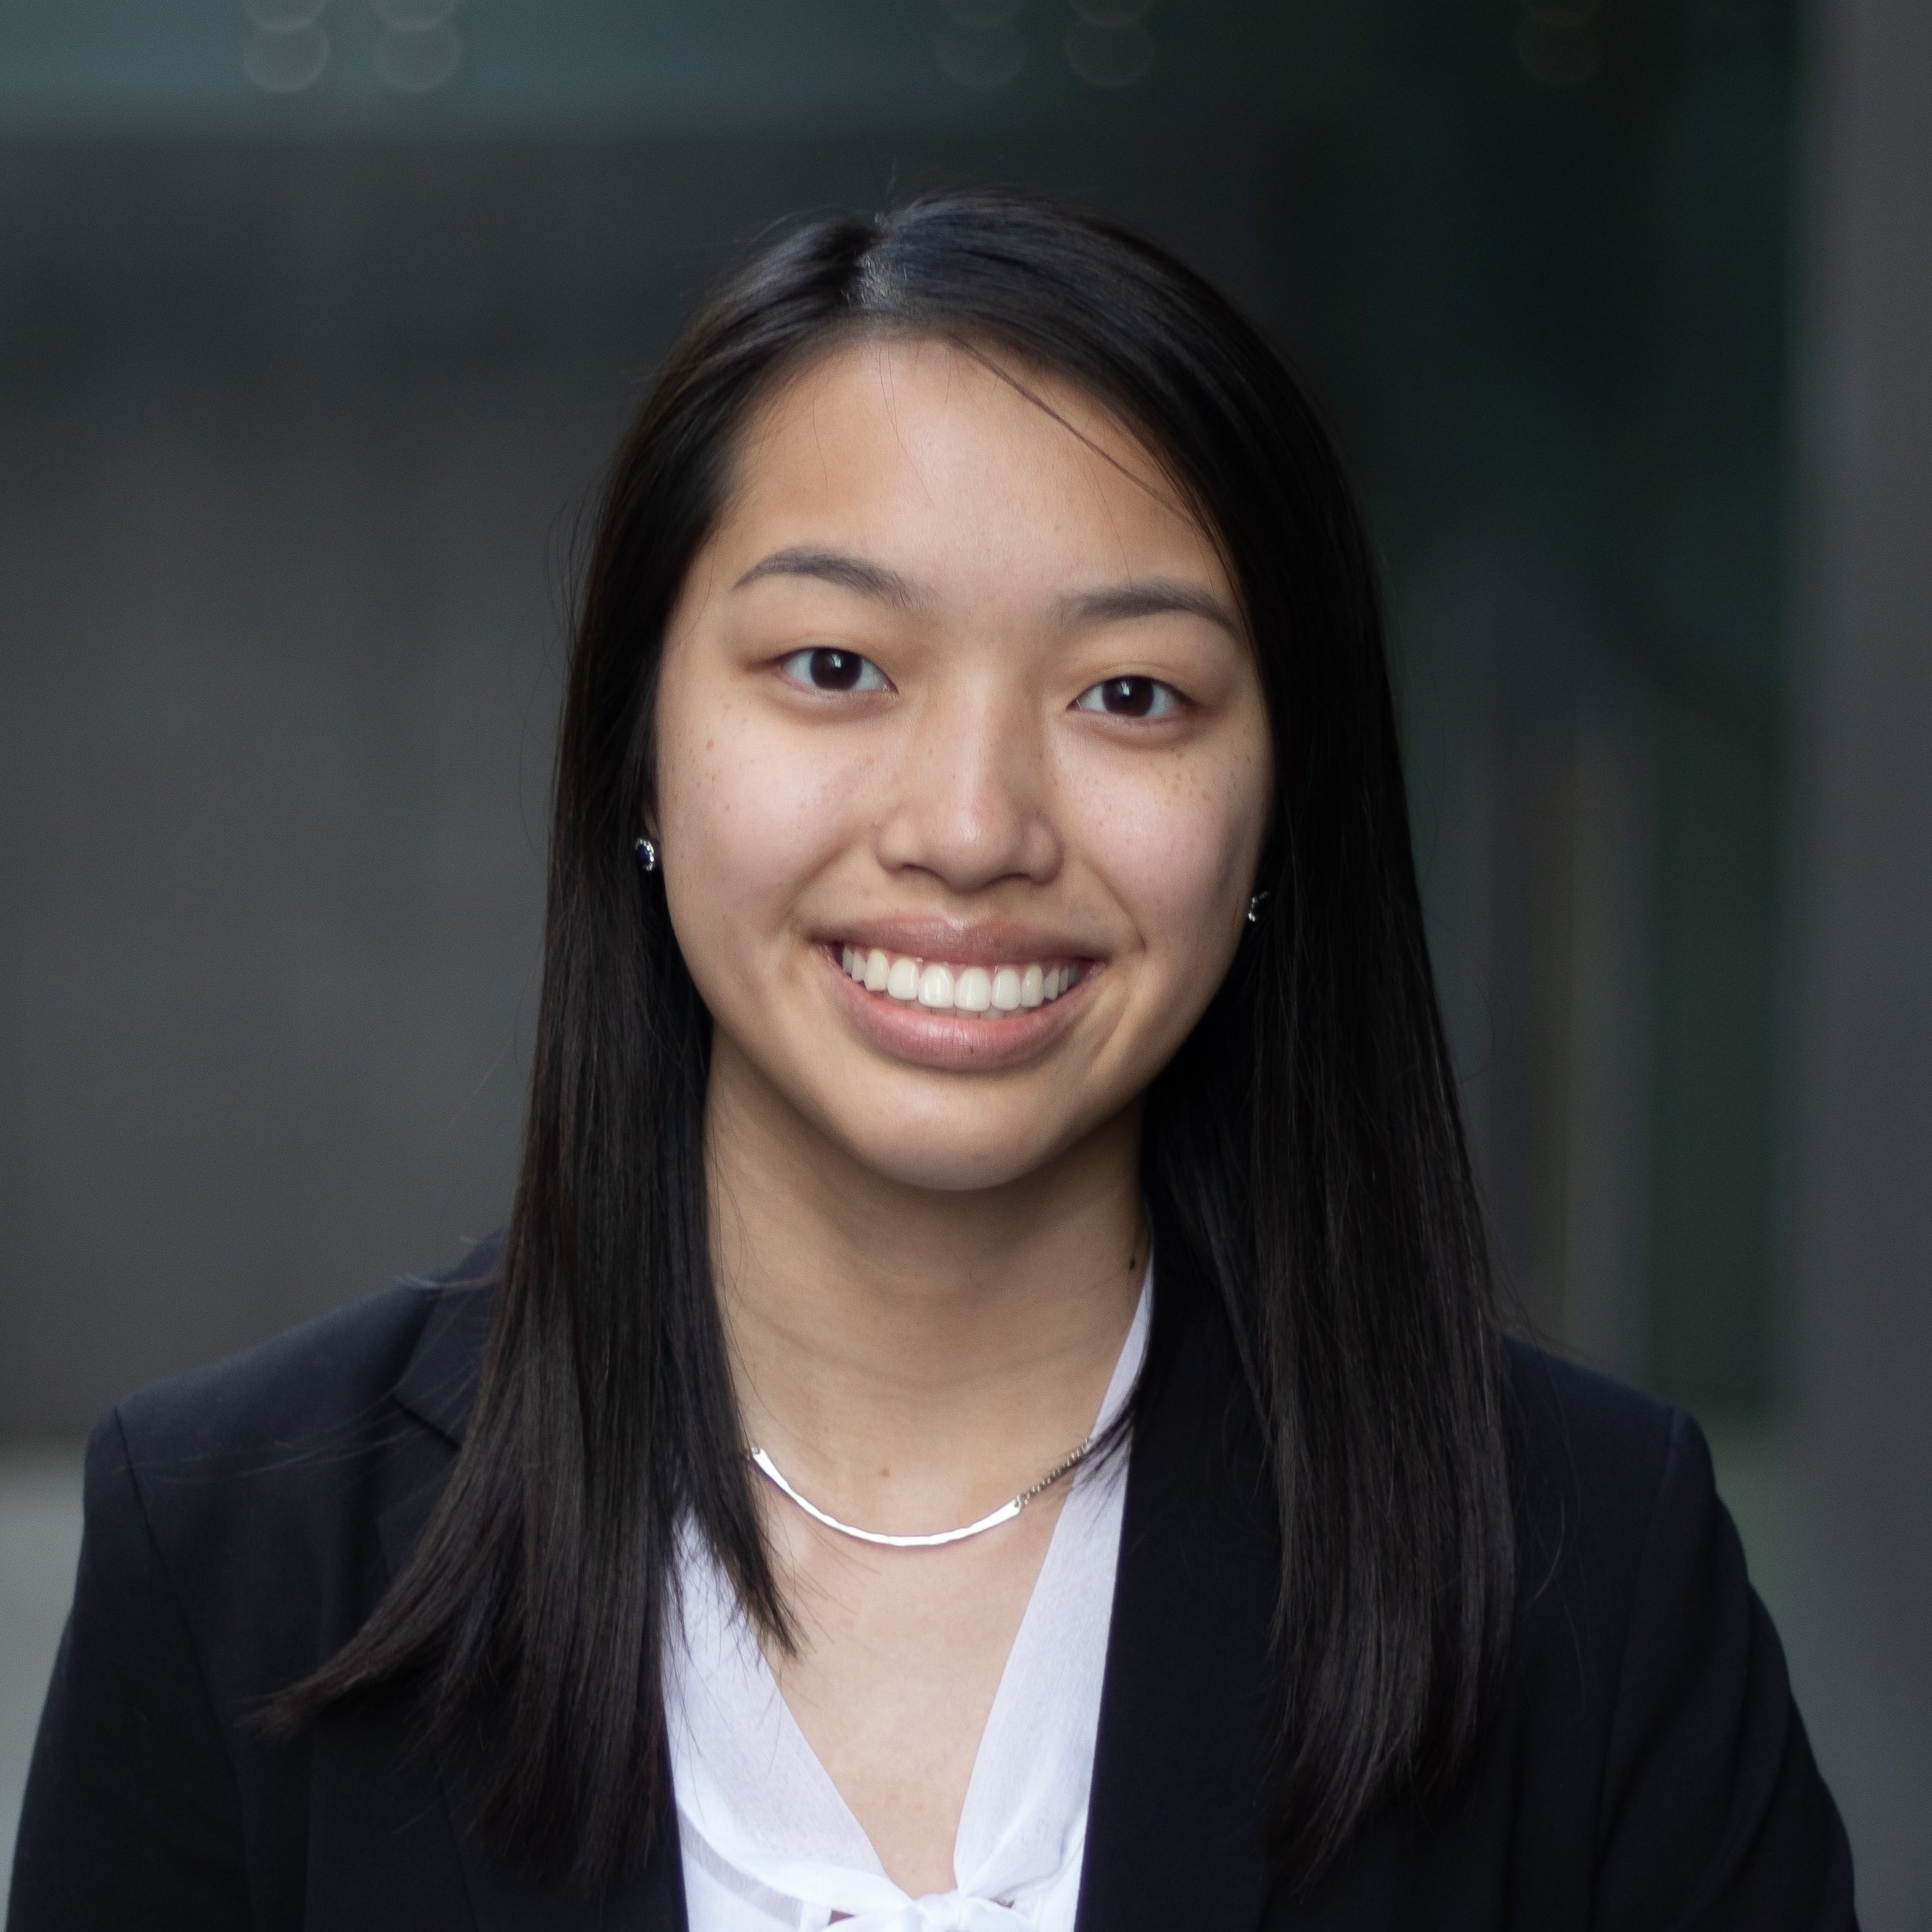 Emily Nguyen   Director of Accounting Spring, TX BHP, Finance Class of 2022  Emily enjoys traveling, skateboarding, and collecting postcards/succulents. She always has her sunnies on. Emily is a sophomore in BHP with interests in high fashion, energy, and education policy. This past summer, she interned at NextEra Energy conducting project valuations for solar sites..